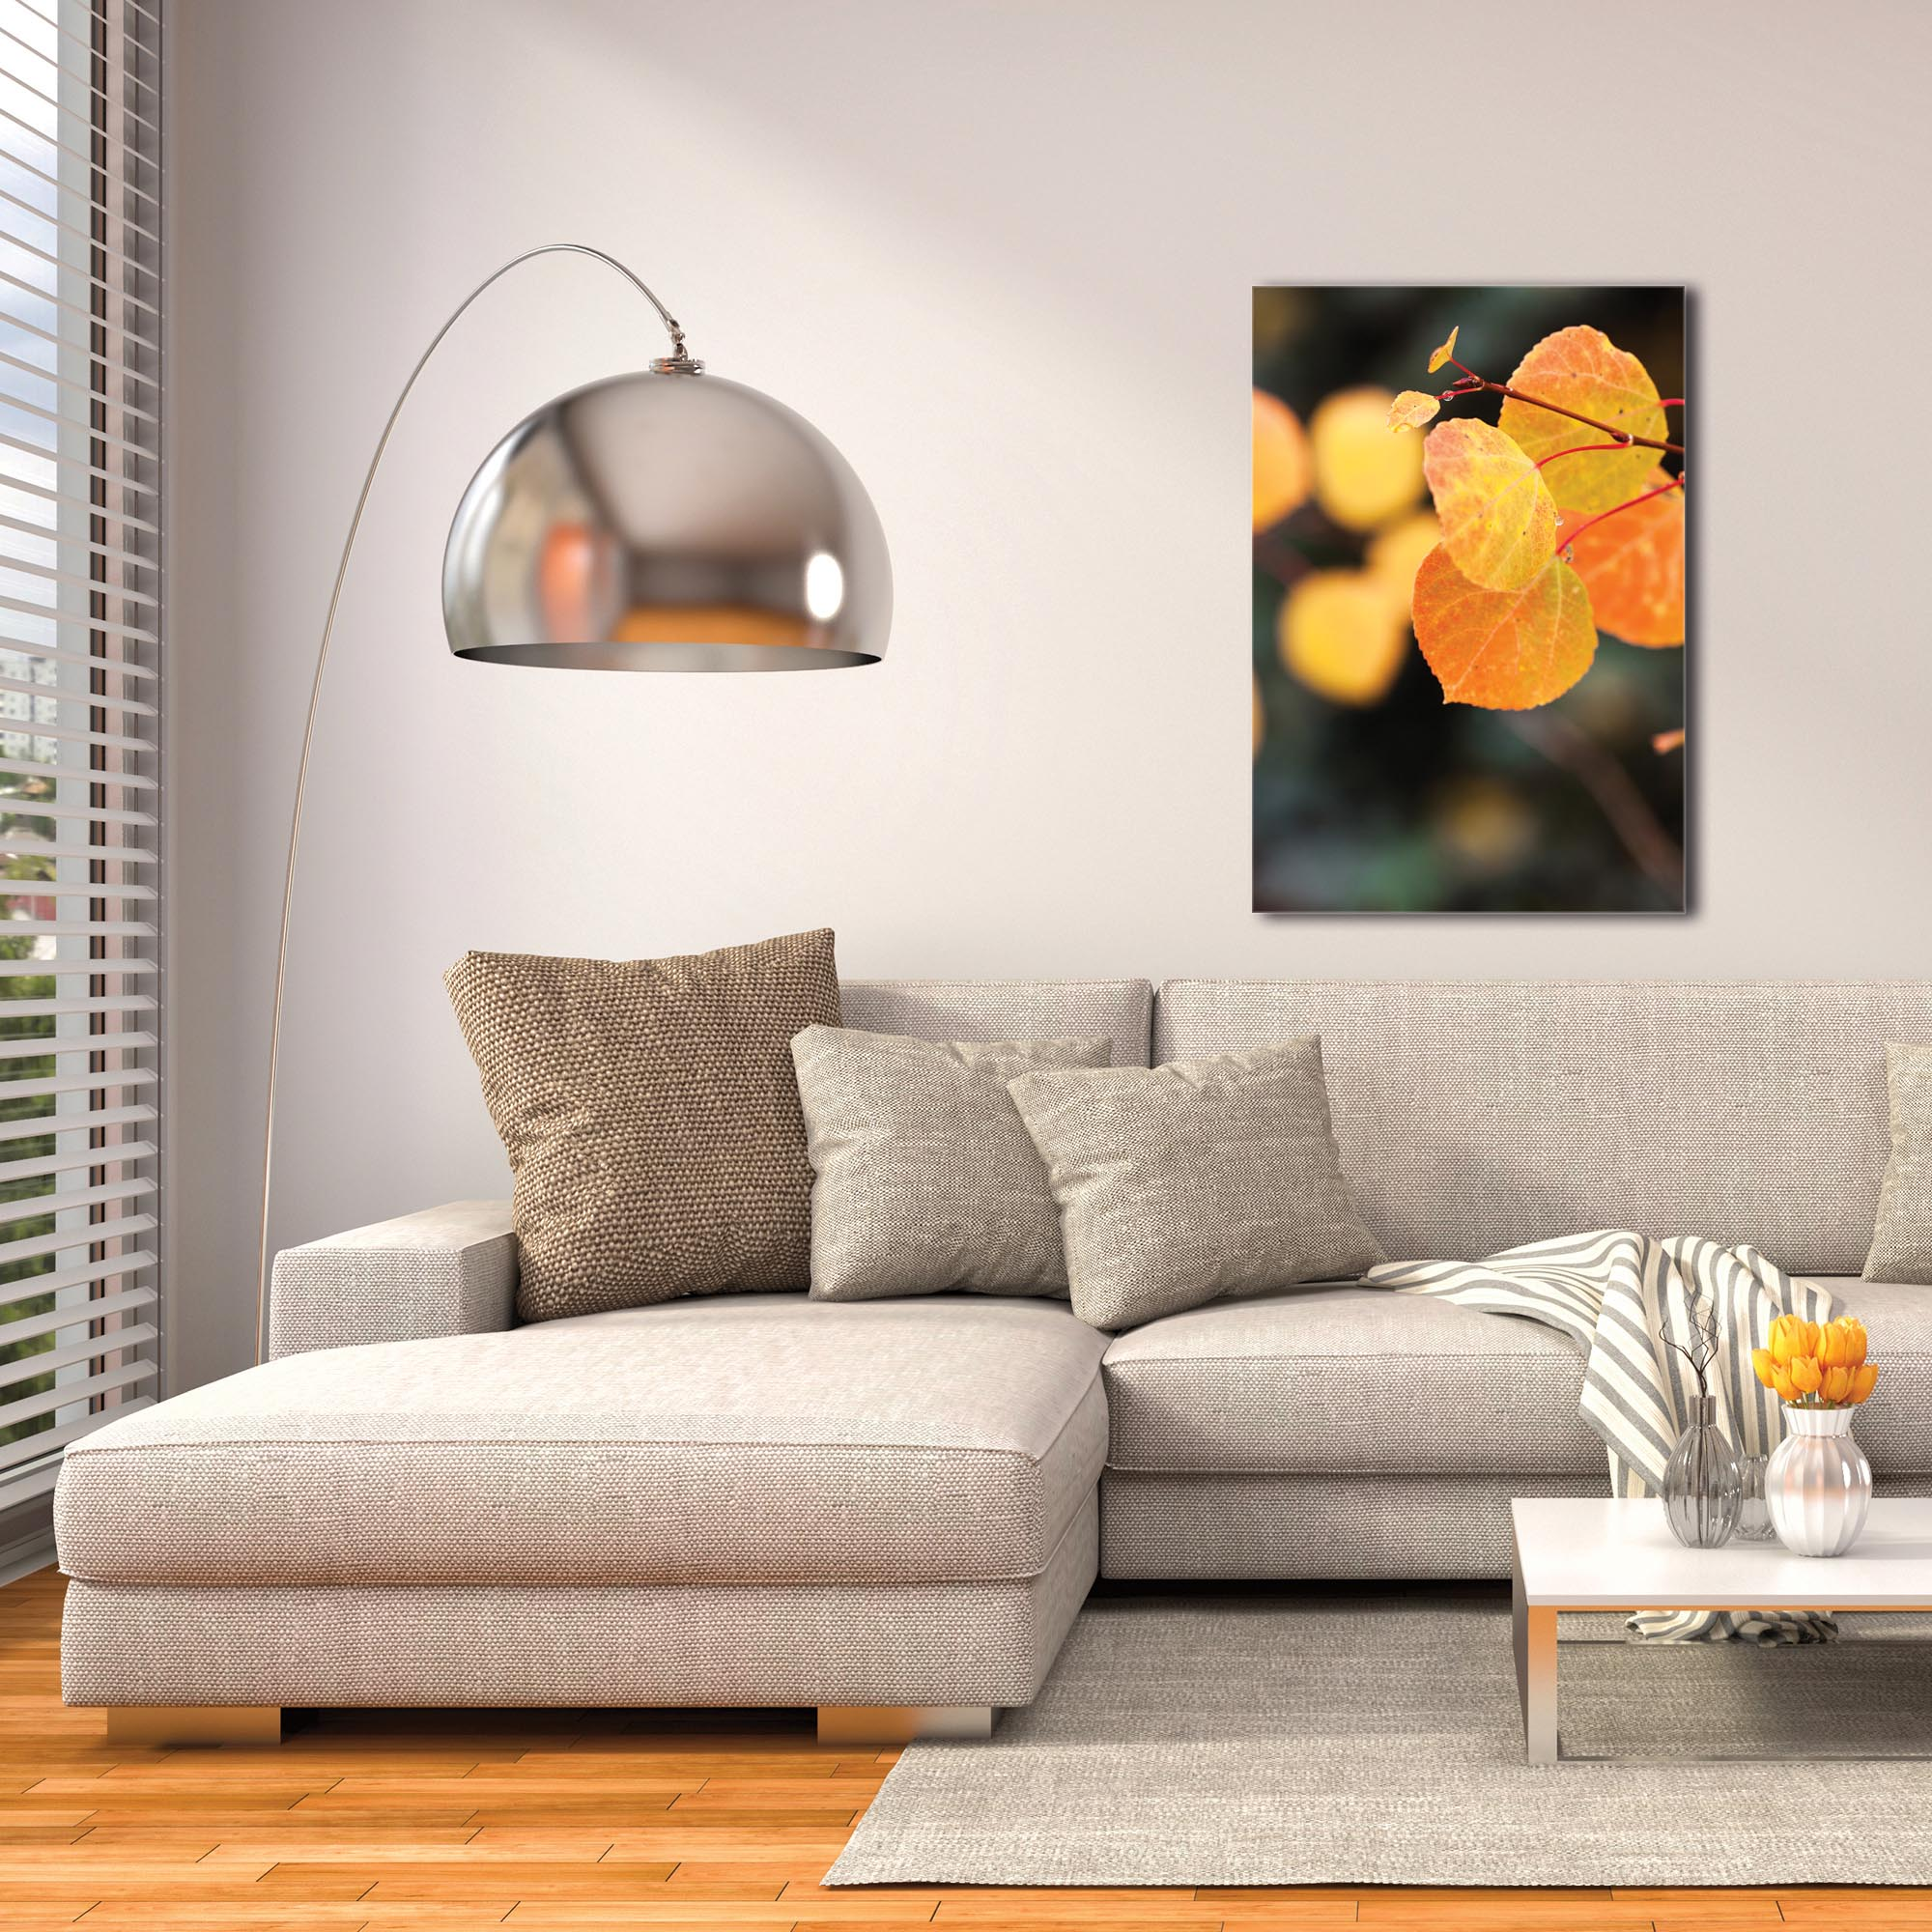 Nature Photography 'Changing Leaves' - Autumn Leaves Art on Metal or Plexiglass - Image 3